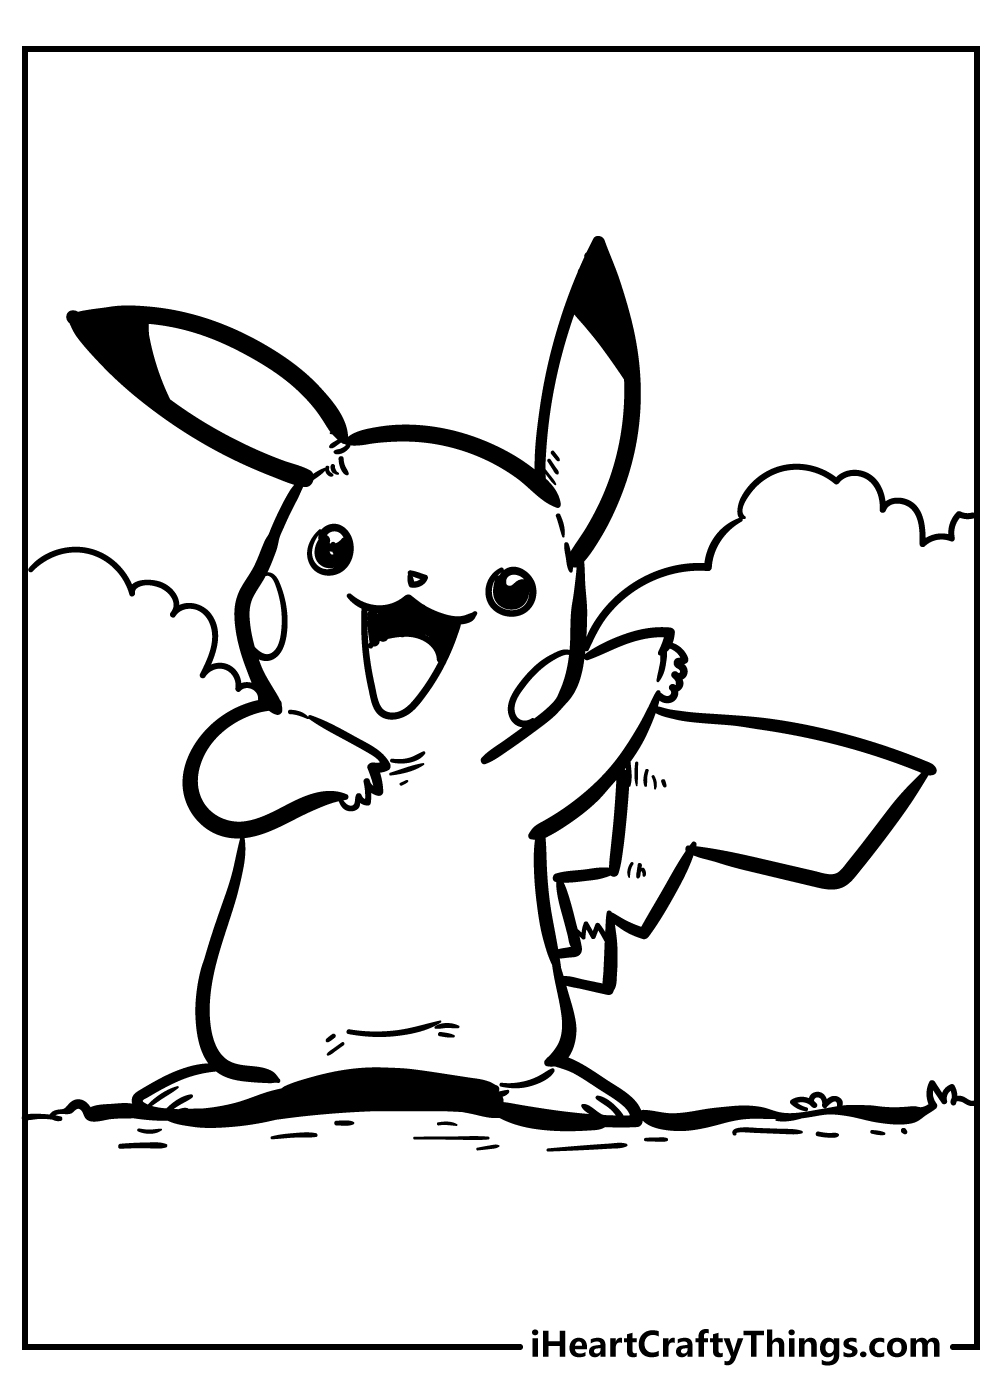 18 Powerful Pikachu Coloring Pages